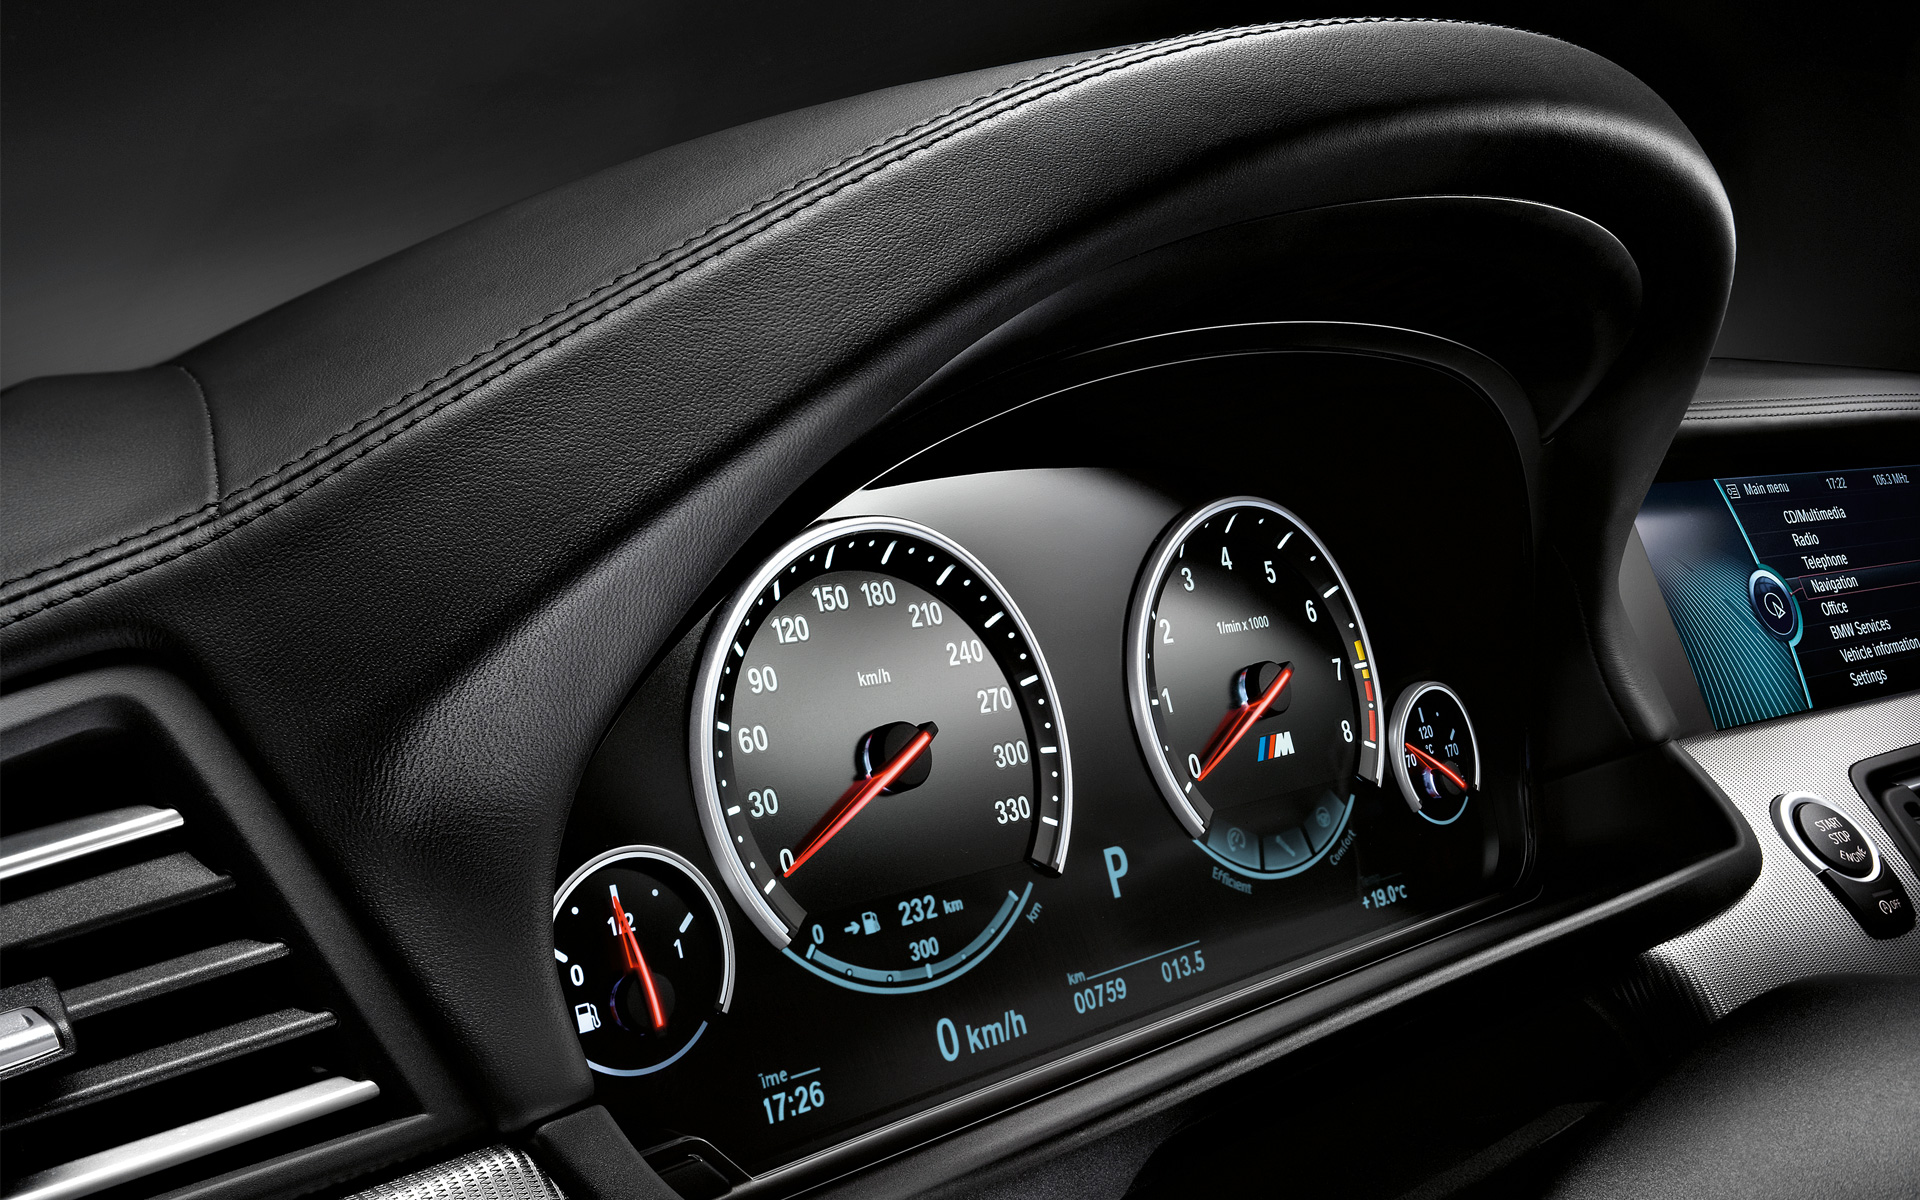 SpeedoMeter BMW Dashboard HdWallpaper - 9to5 Car Wallpapers